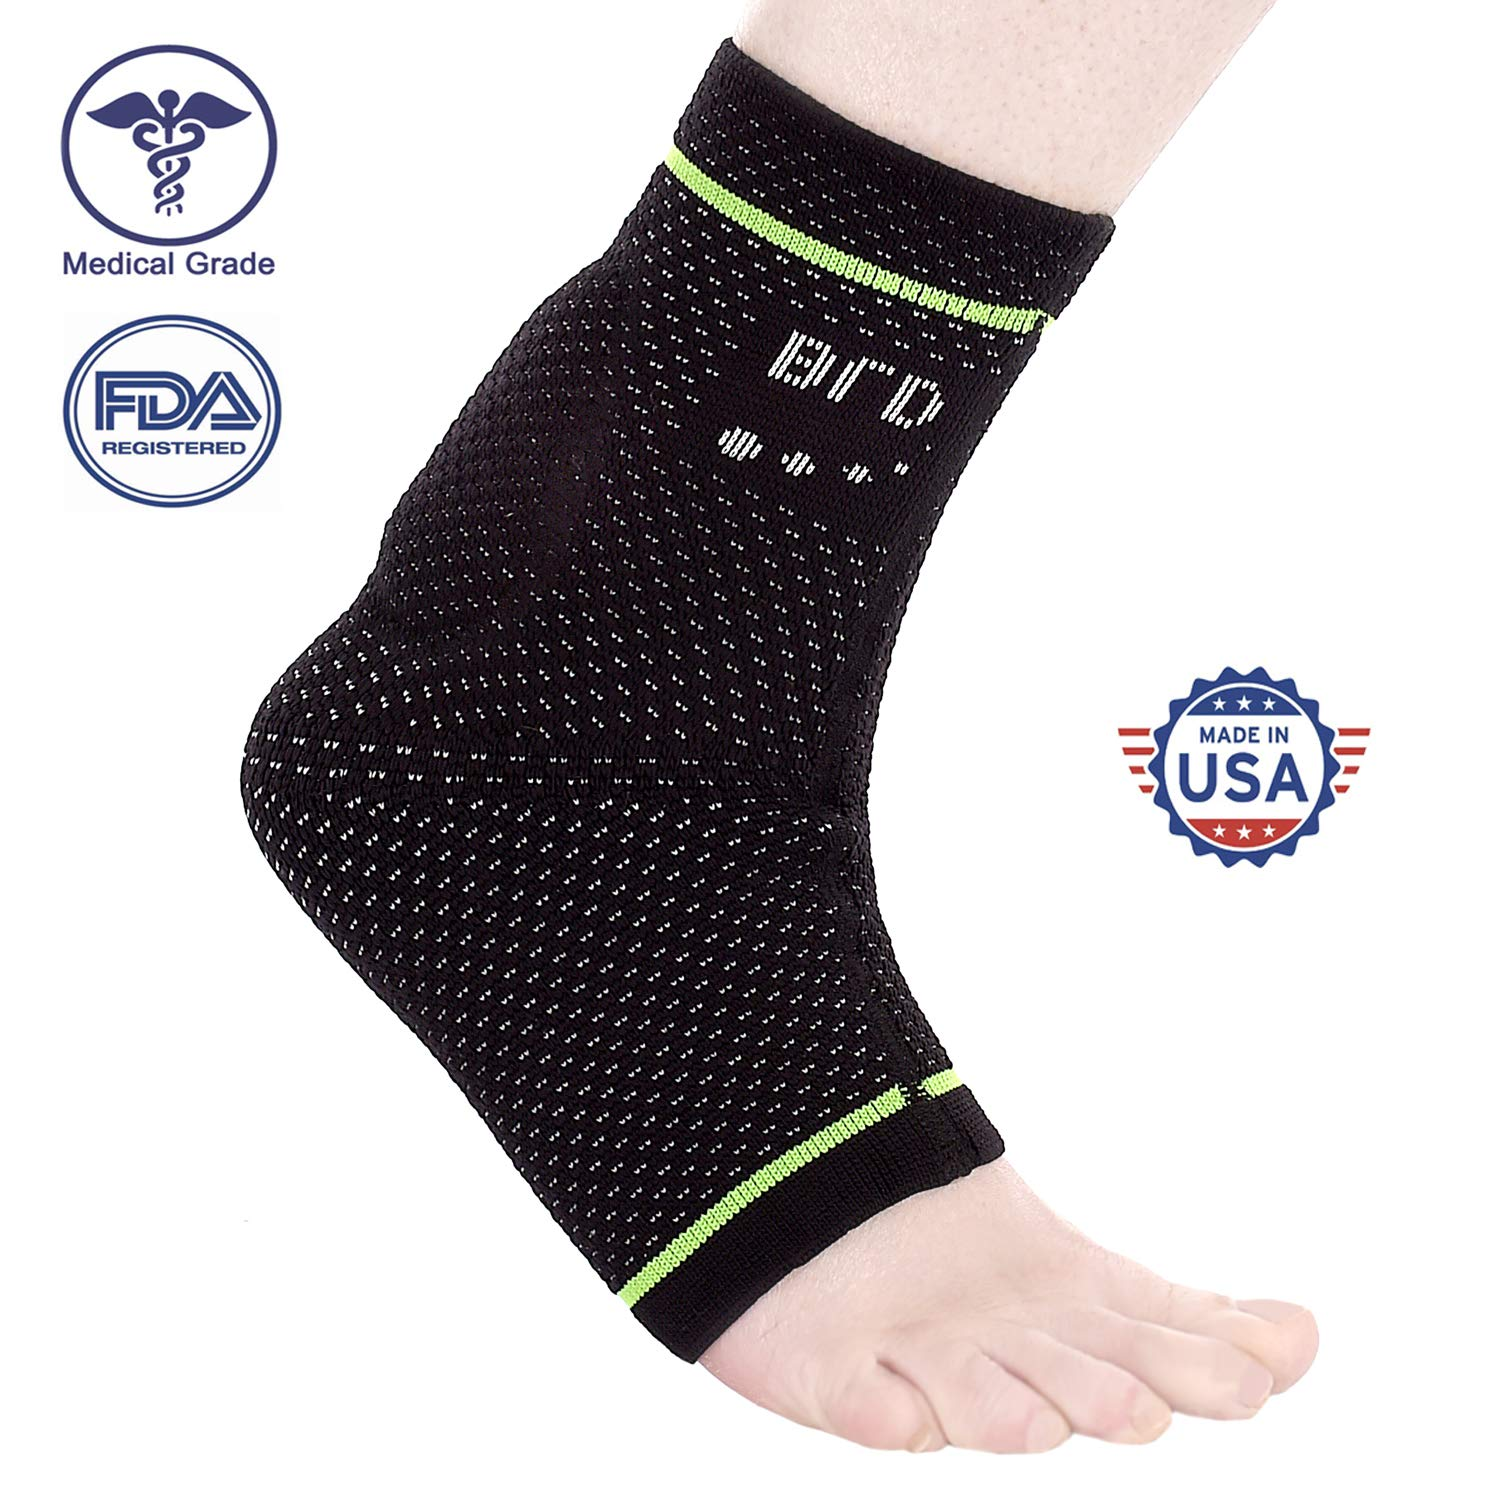 BRD Sport Achilles Compression Ankle Brace - FDA Registered Brace Offers Breathable, Comfortable Recovery from Pain, Swelling, Tendonitis (Black with Green Accent Stripe, L [9''-9.75''])